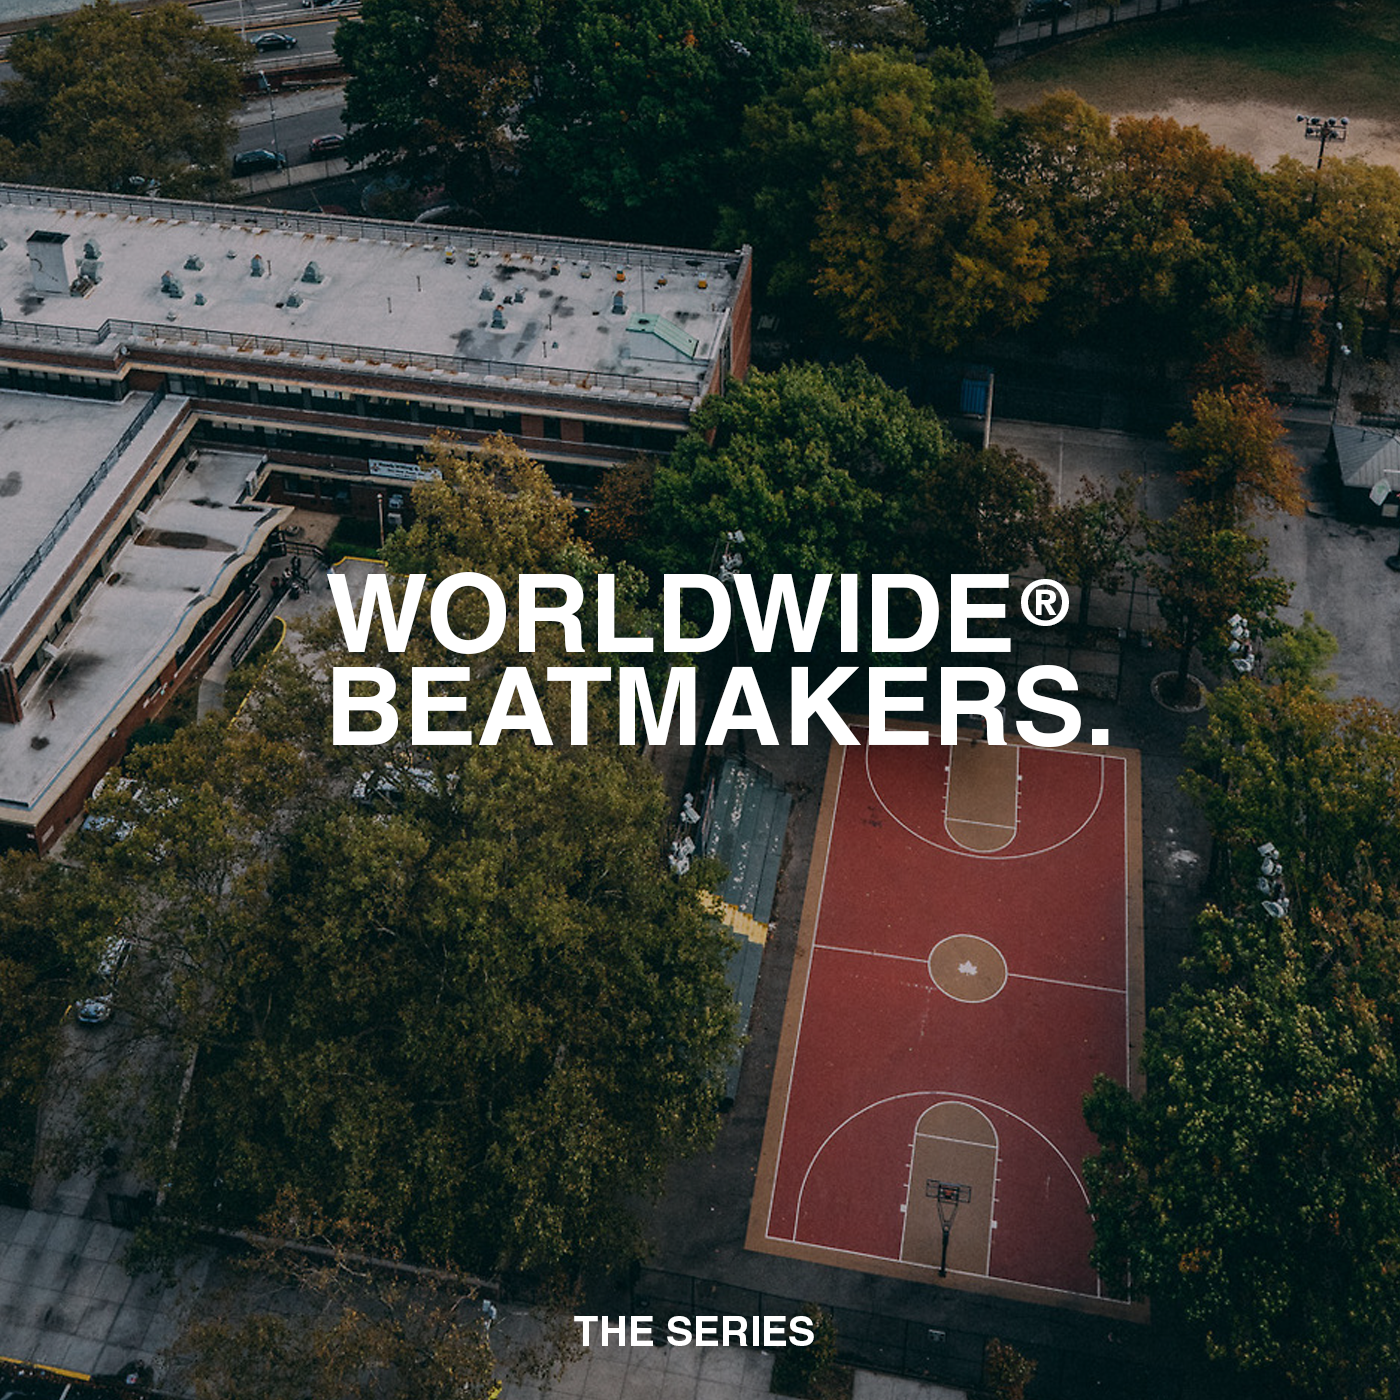 Worldwide Beatmakers - The Series.